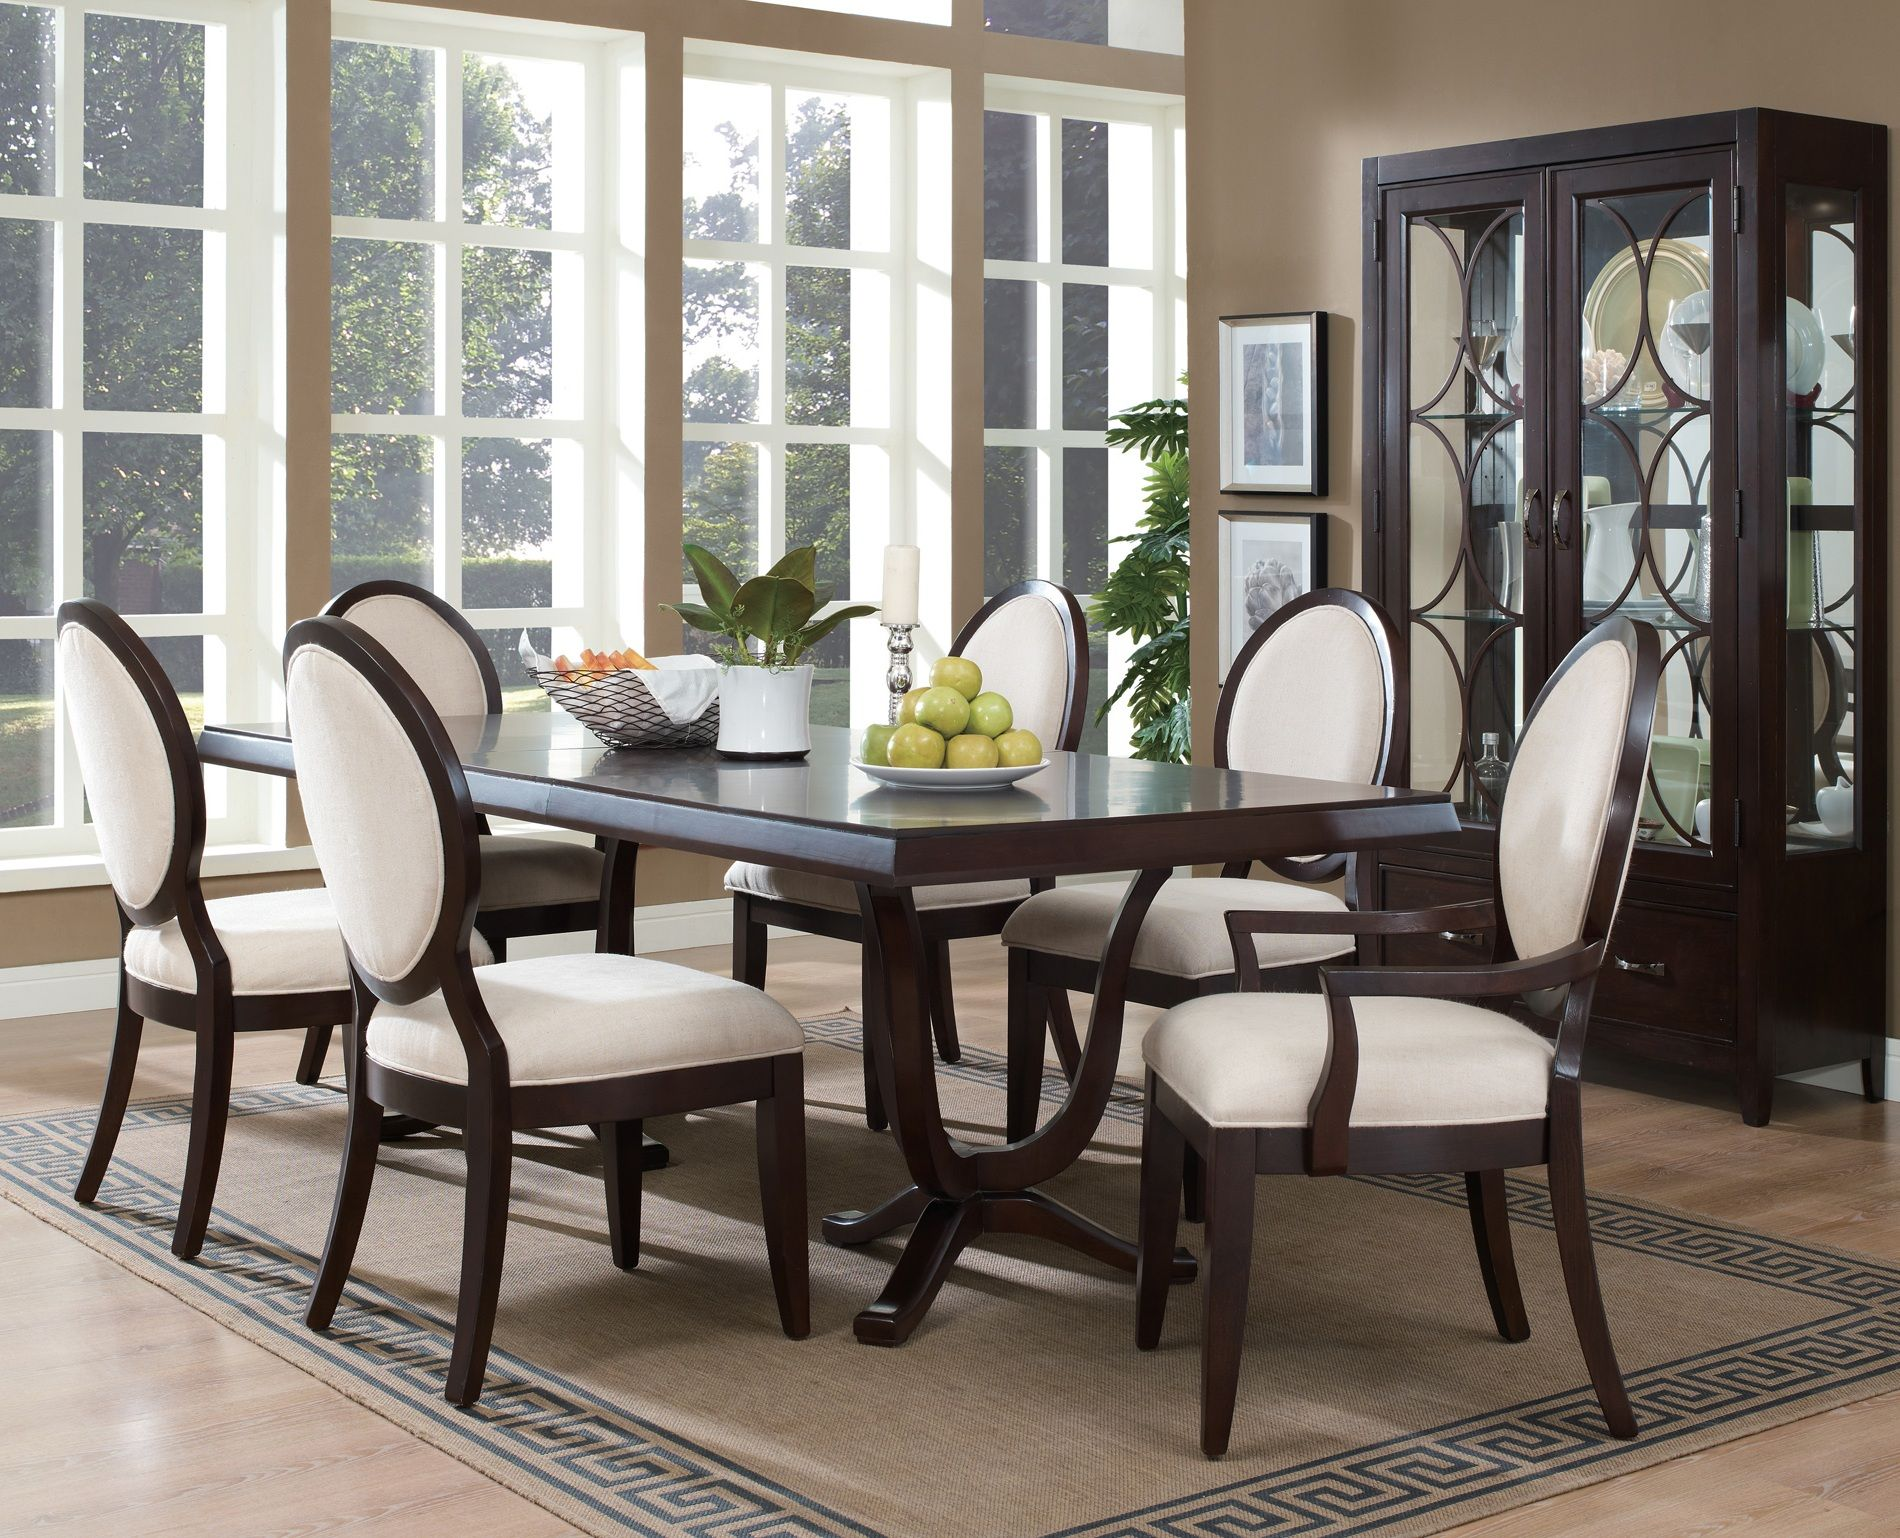 Modern black and white dining room - Fascinating Dining Room Set Idea With Two Tone Upholstered Chairs And Rectangular Top Table And Mini